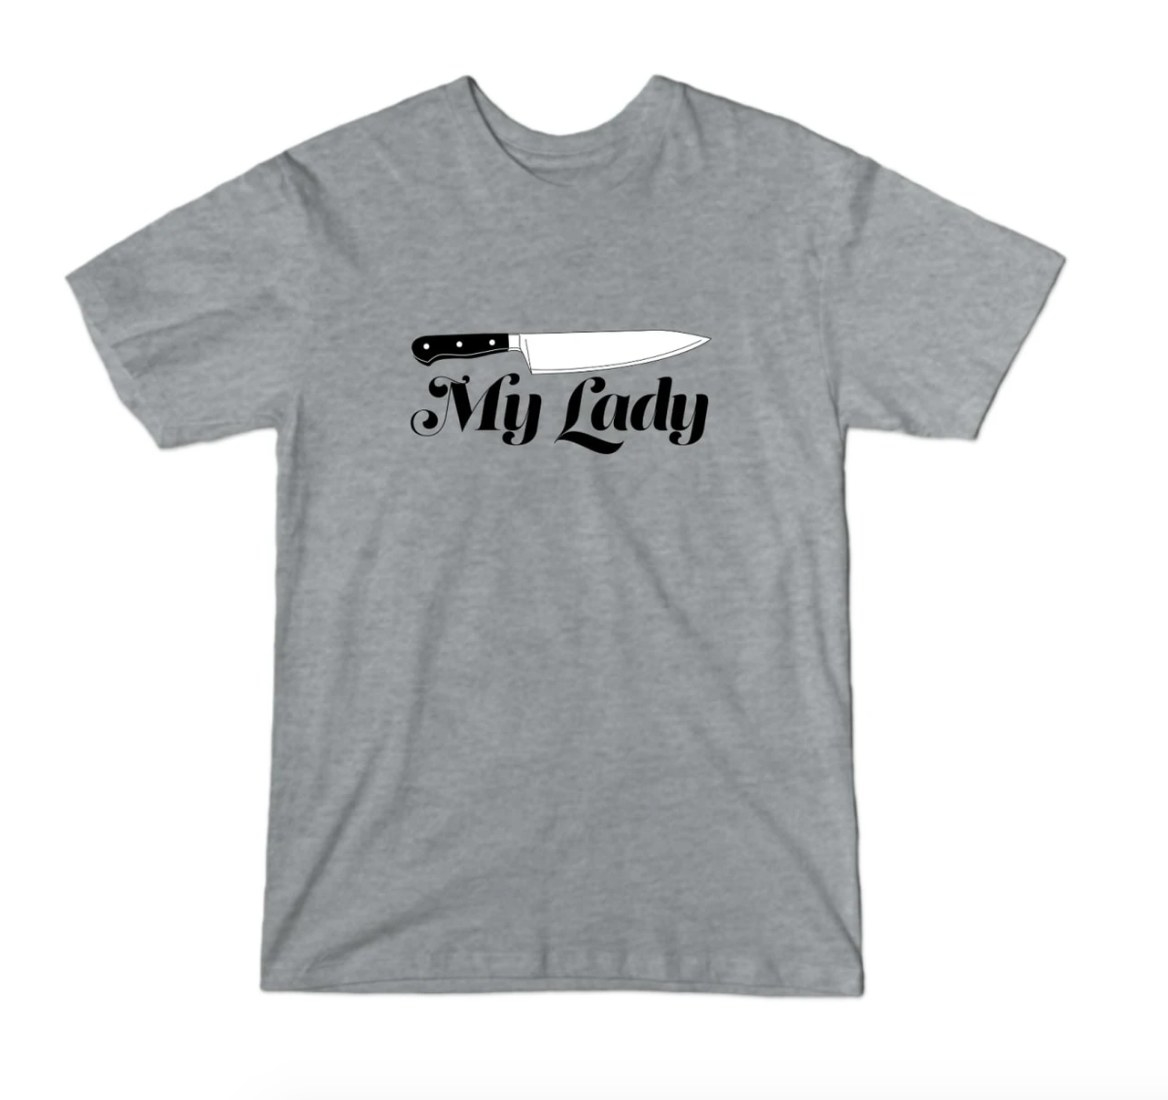 """Gray t-shirt with knife graphic and the words """"My Lady"""""""